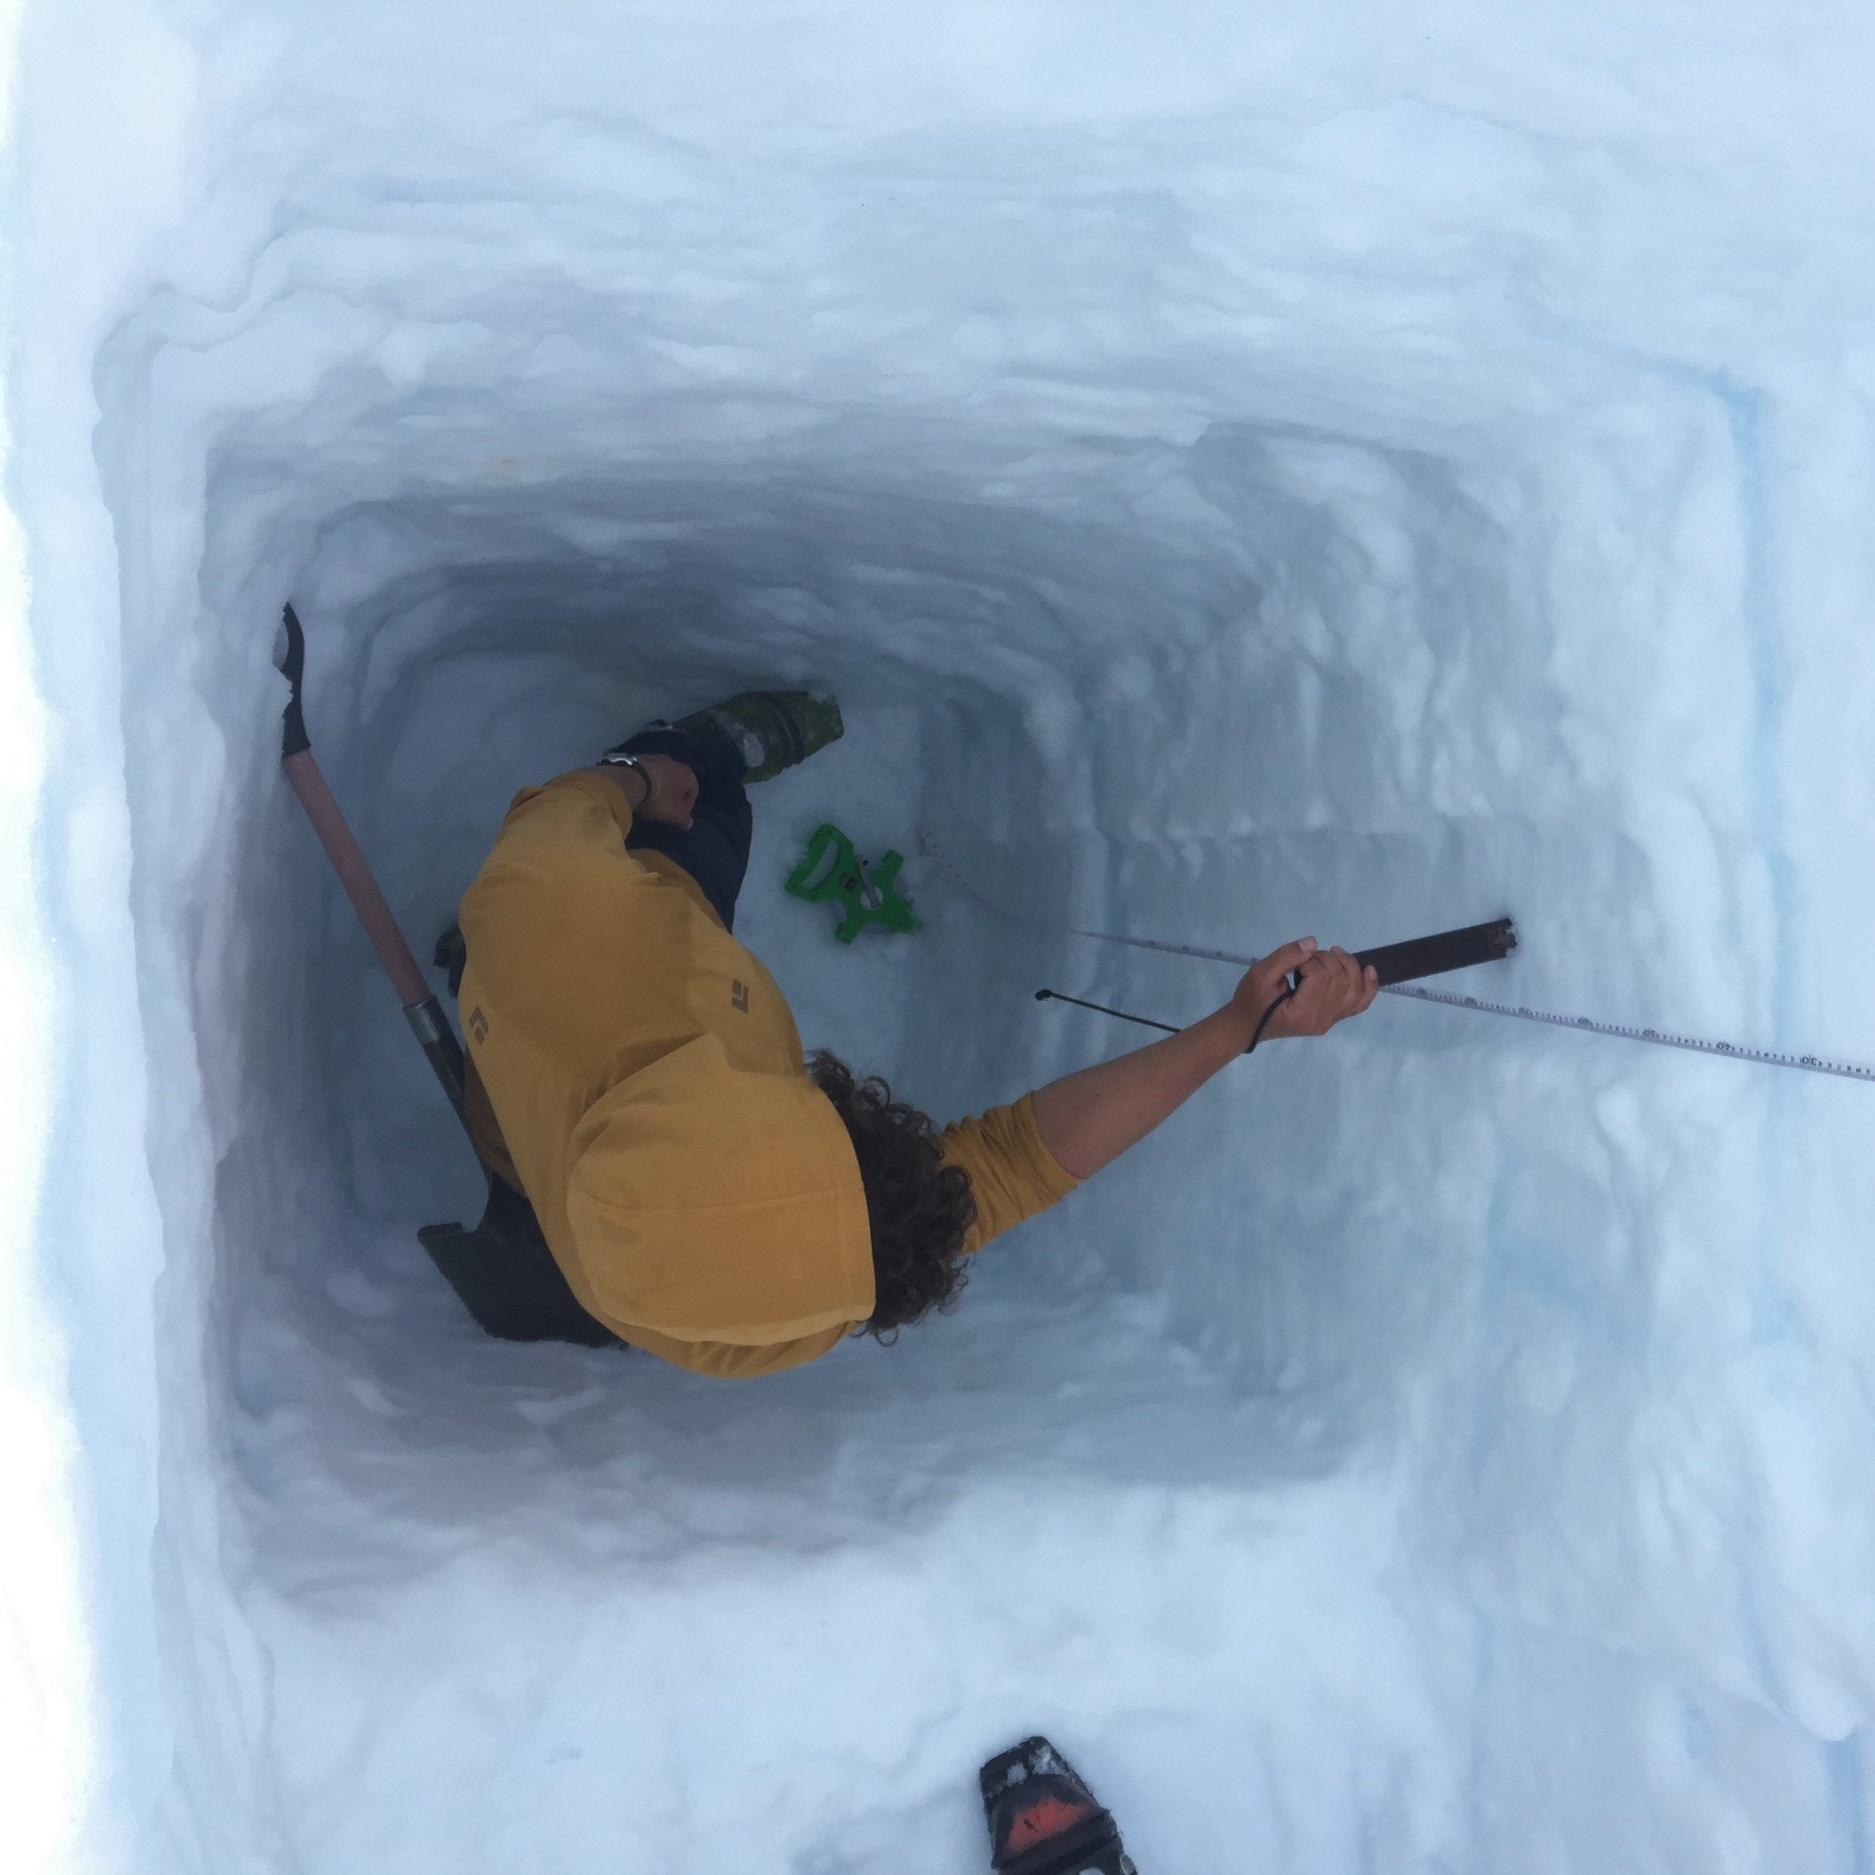 Avery Stewart, a student researcher with the Mass Balance team, collects a snow density sample in a pit. Photo credit: Susannah Cooley.